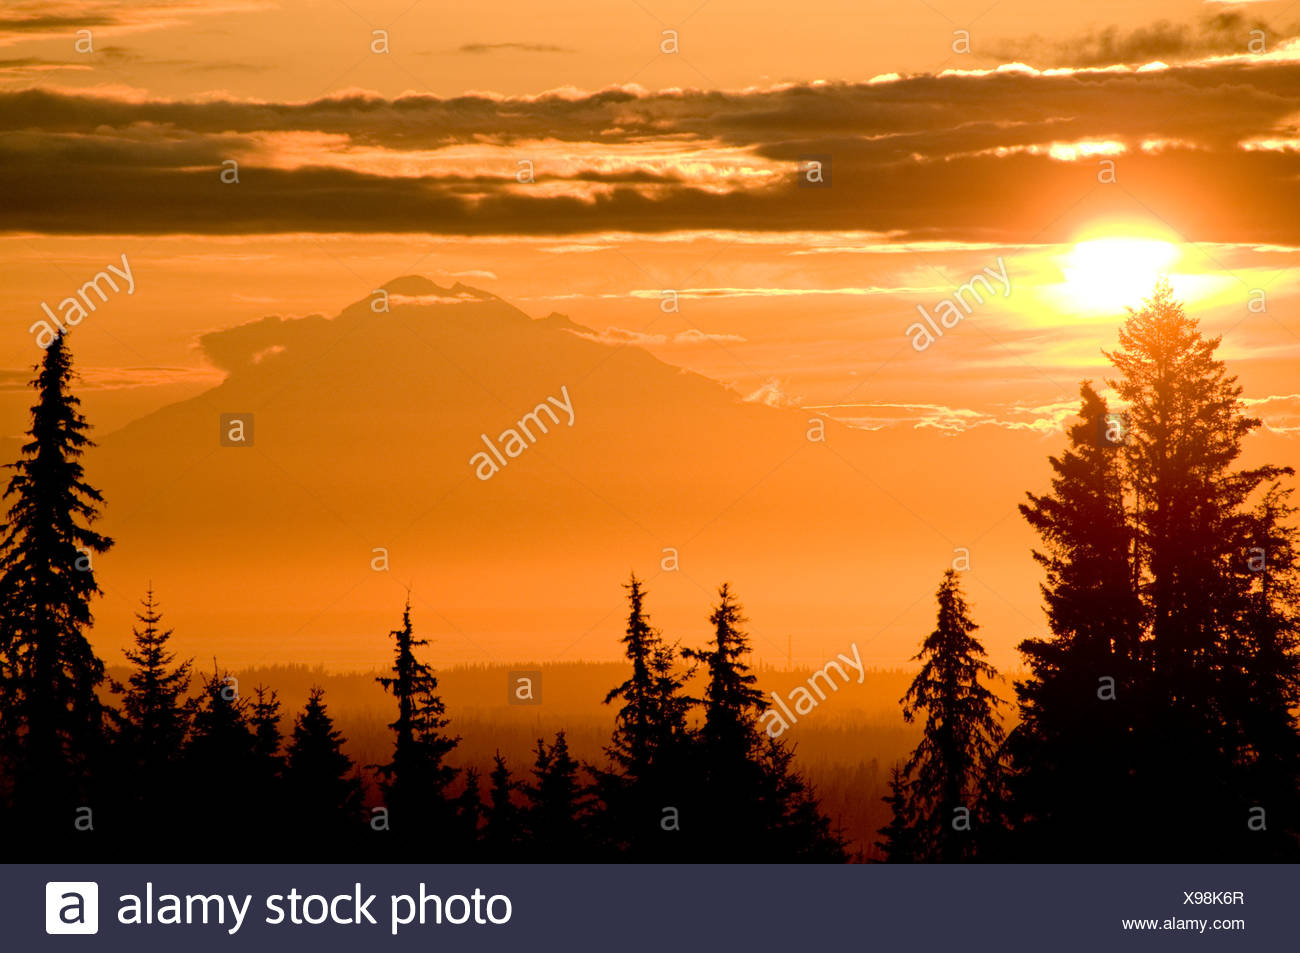 A setting sun silhouettes Redoubt Volcano across Cook Inlet as seen from the Kenai Peninsula in Southcentral Alaska, Summer - Stock Image